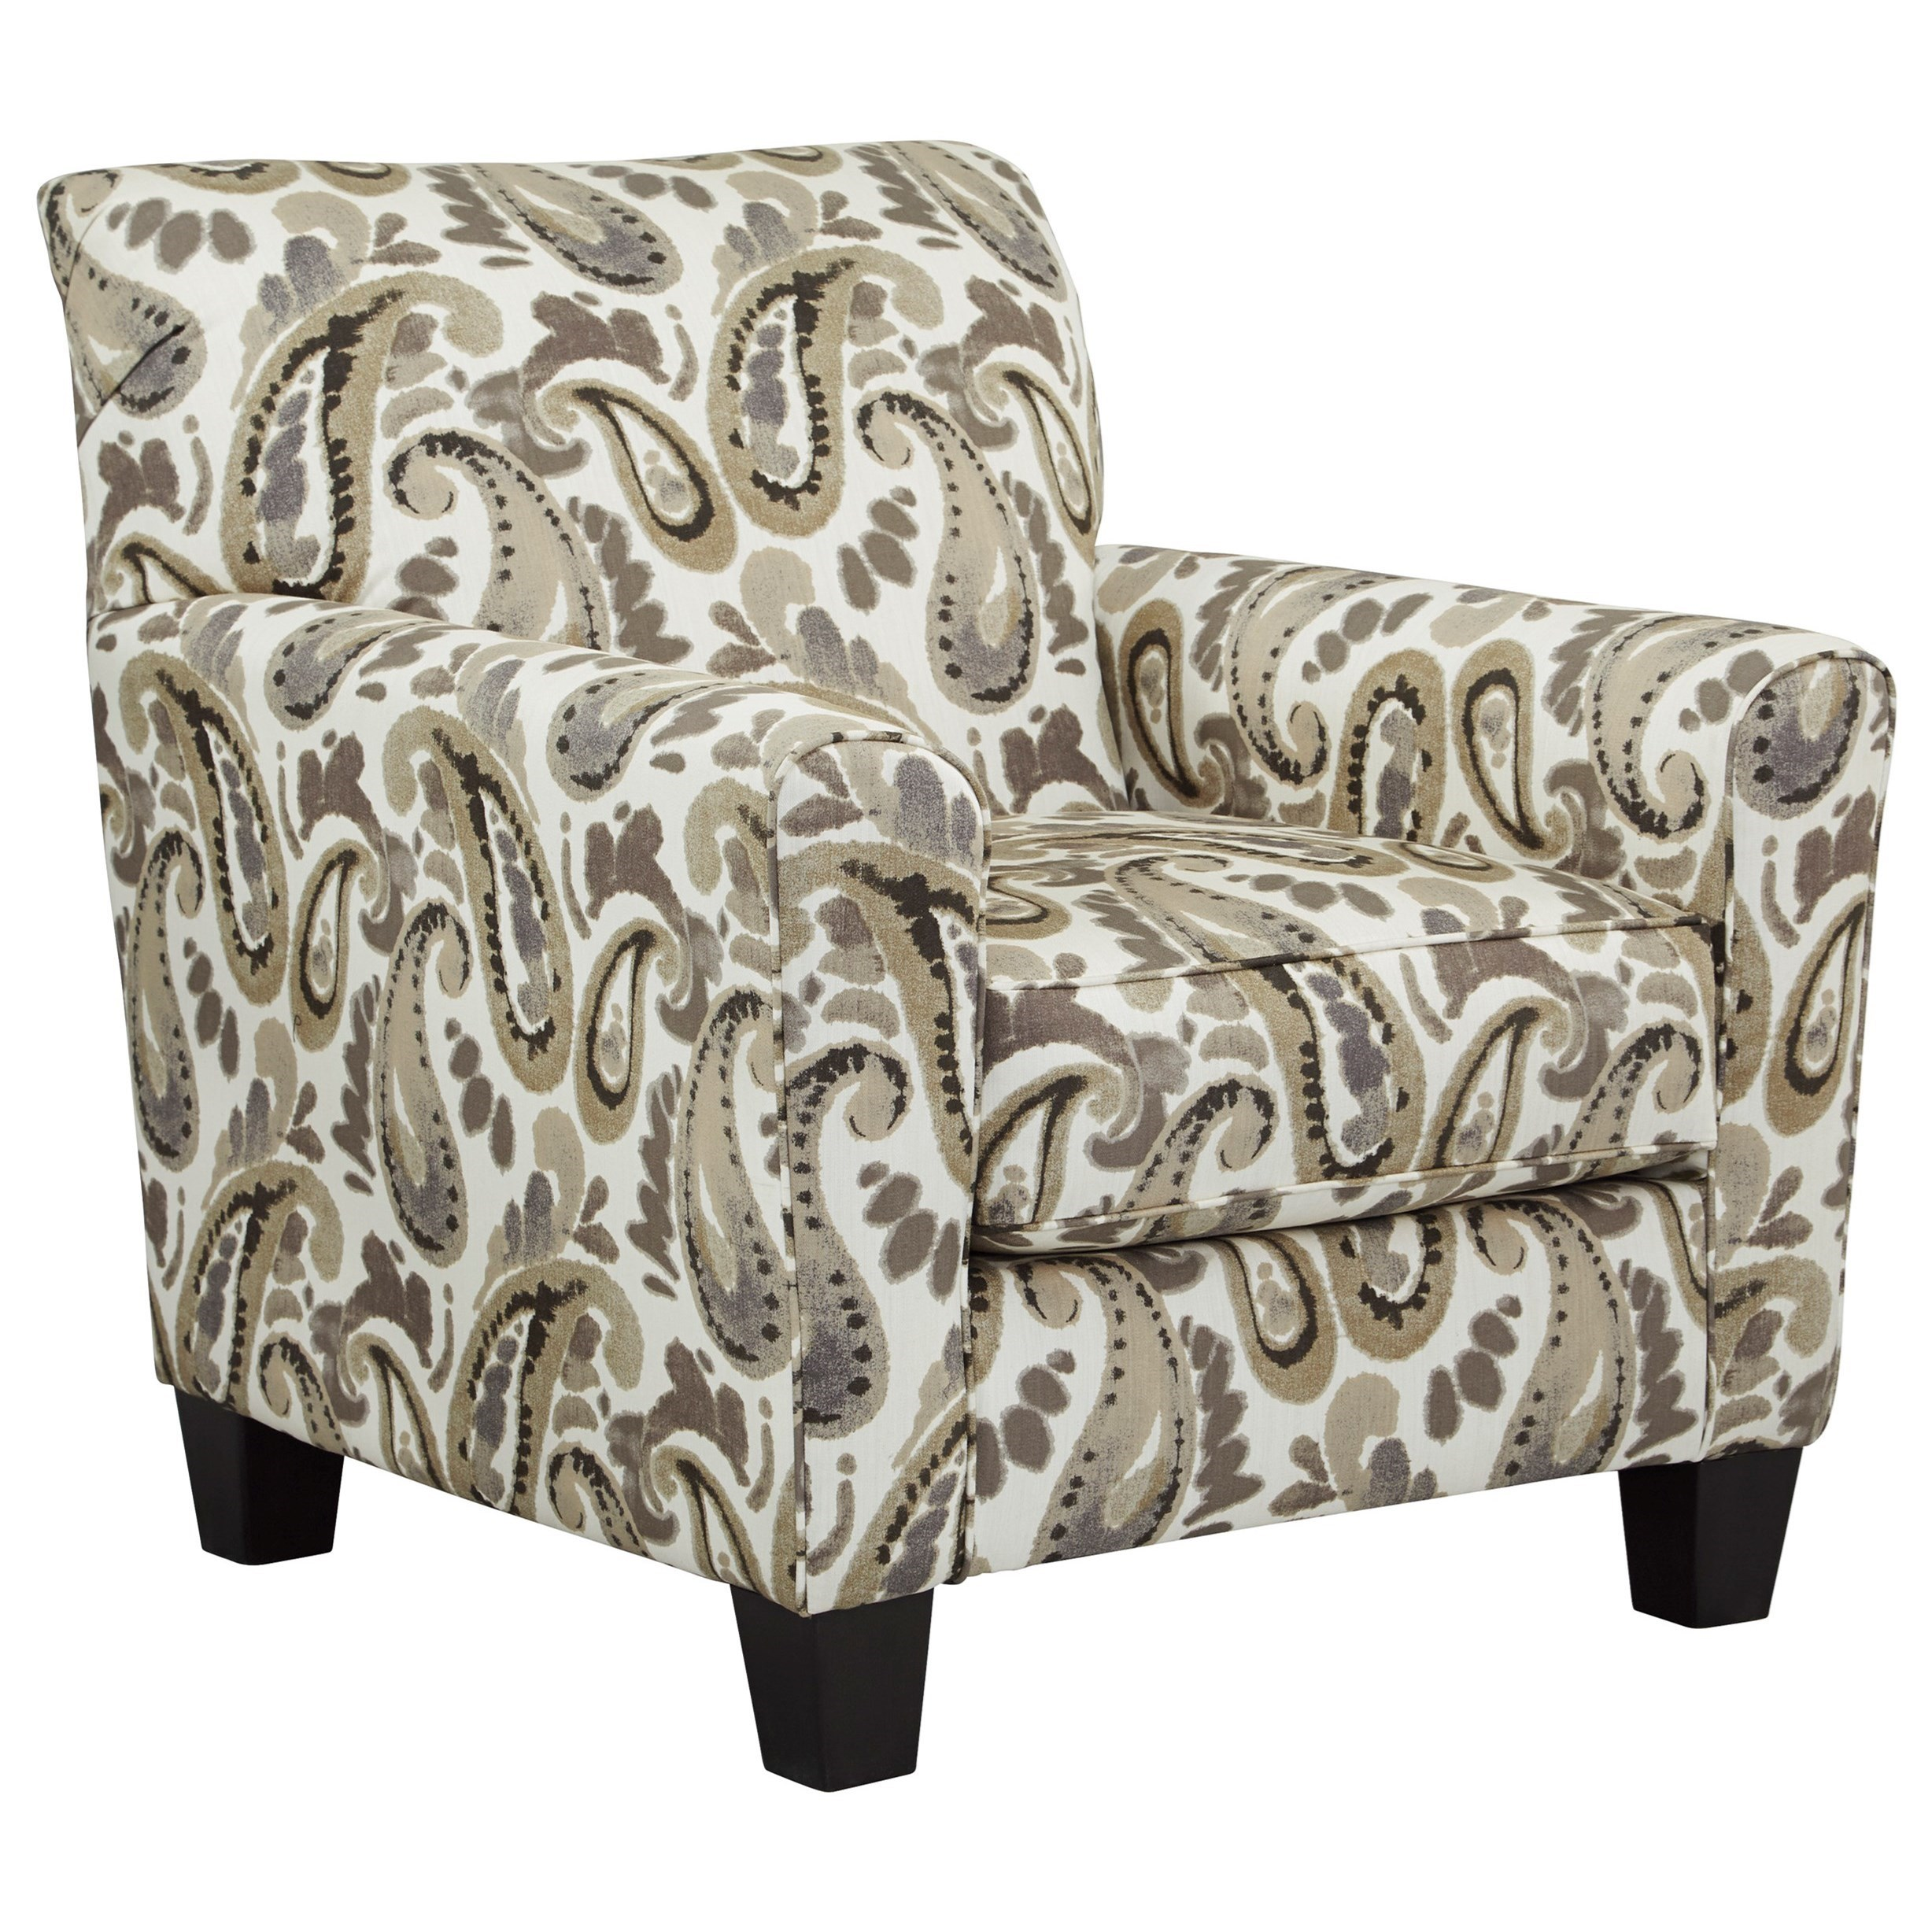 Delightful Ashley Furniture Arietta Accent Chair In Paisley Fabric   Gill Brothers  Furniture   Upholstered Chairs